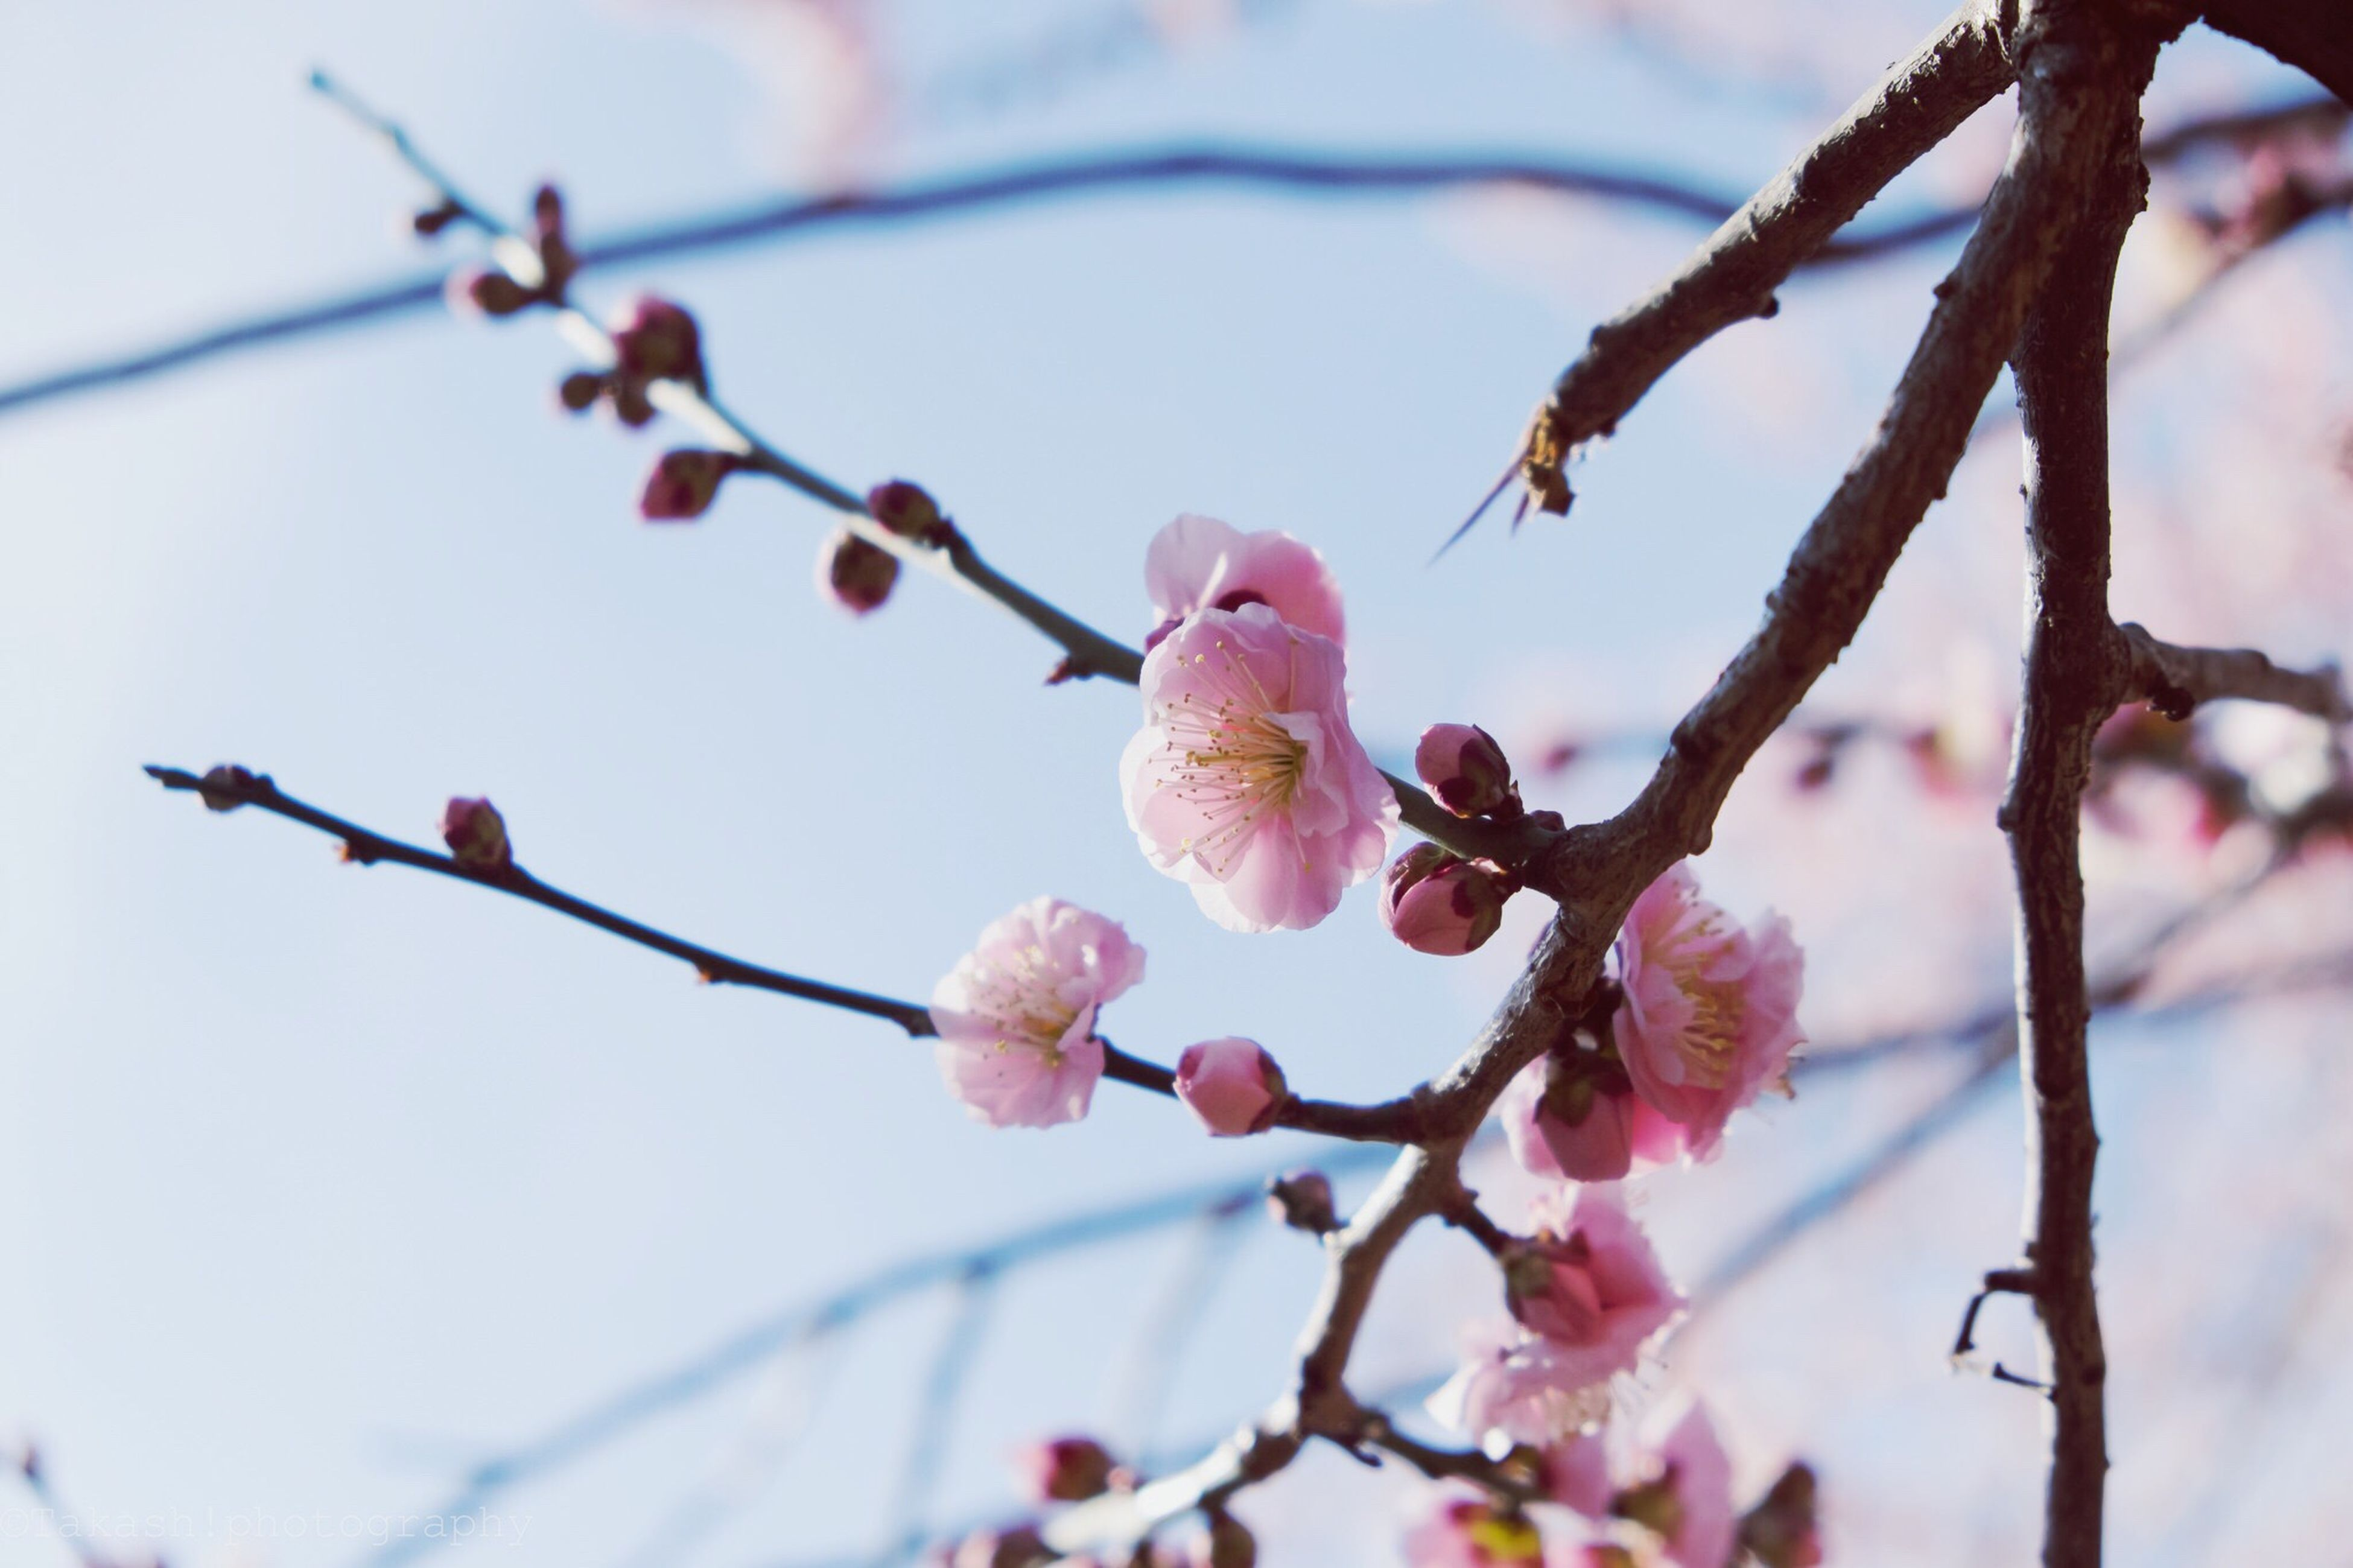 flower, branch, freshness, growth, tree, cherry tree, cherry blossom, fragility, twig, blossom, pink color, focus on foreground, beauty in nature, low angle view, nature, fruit tree, close-up, orchard, springtime, bud